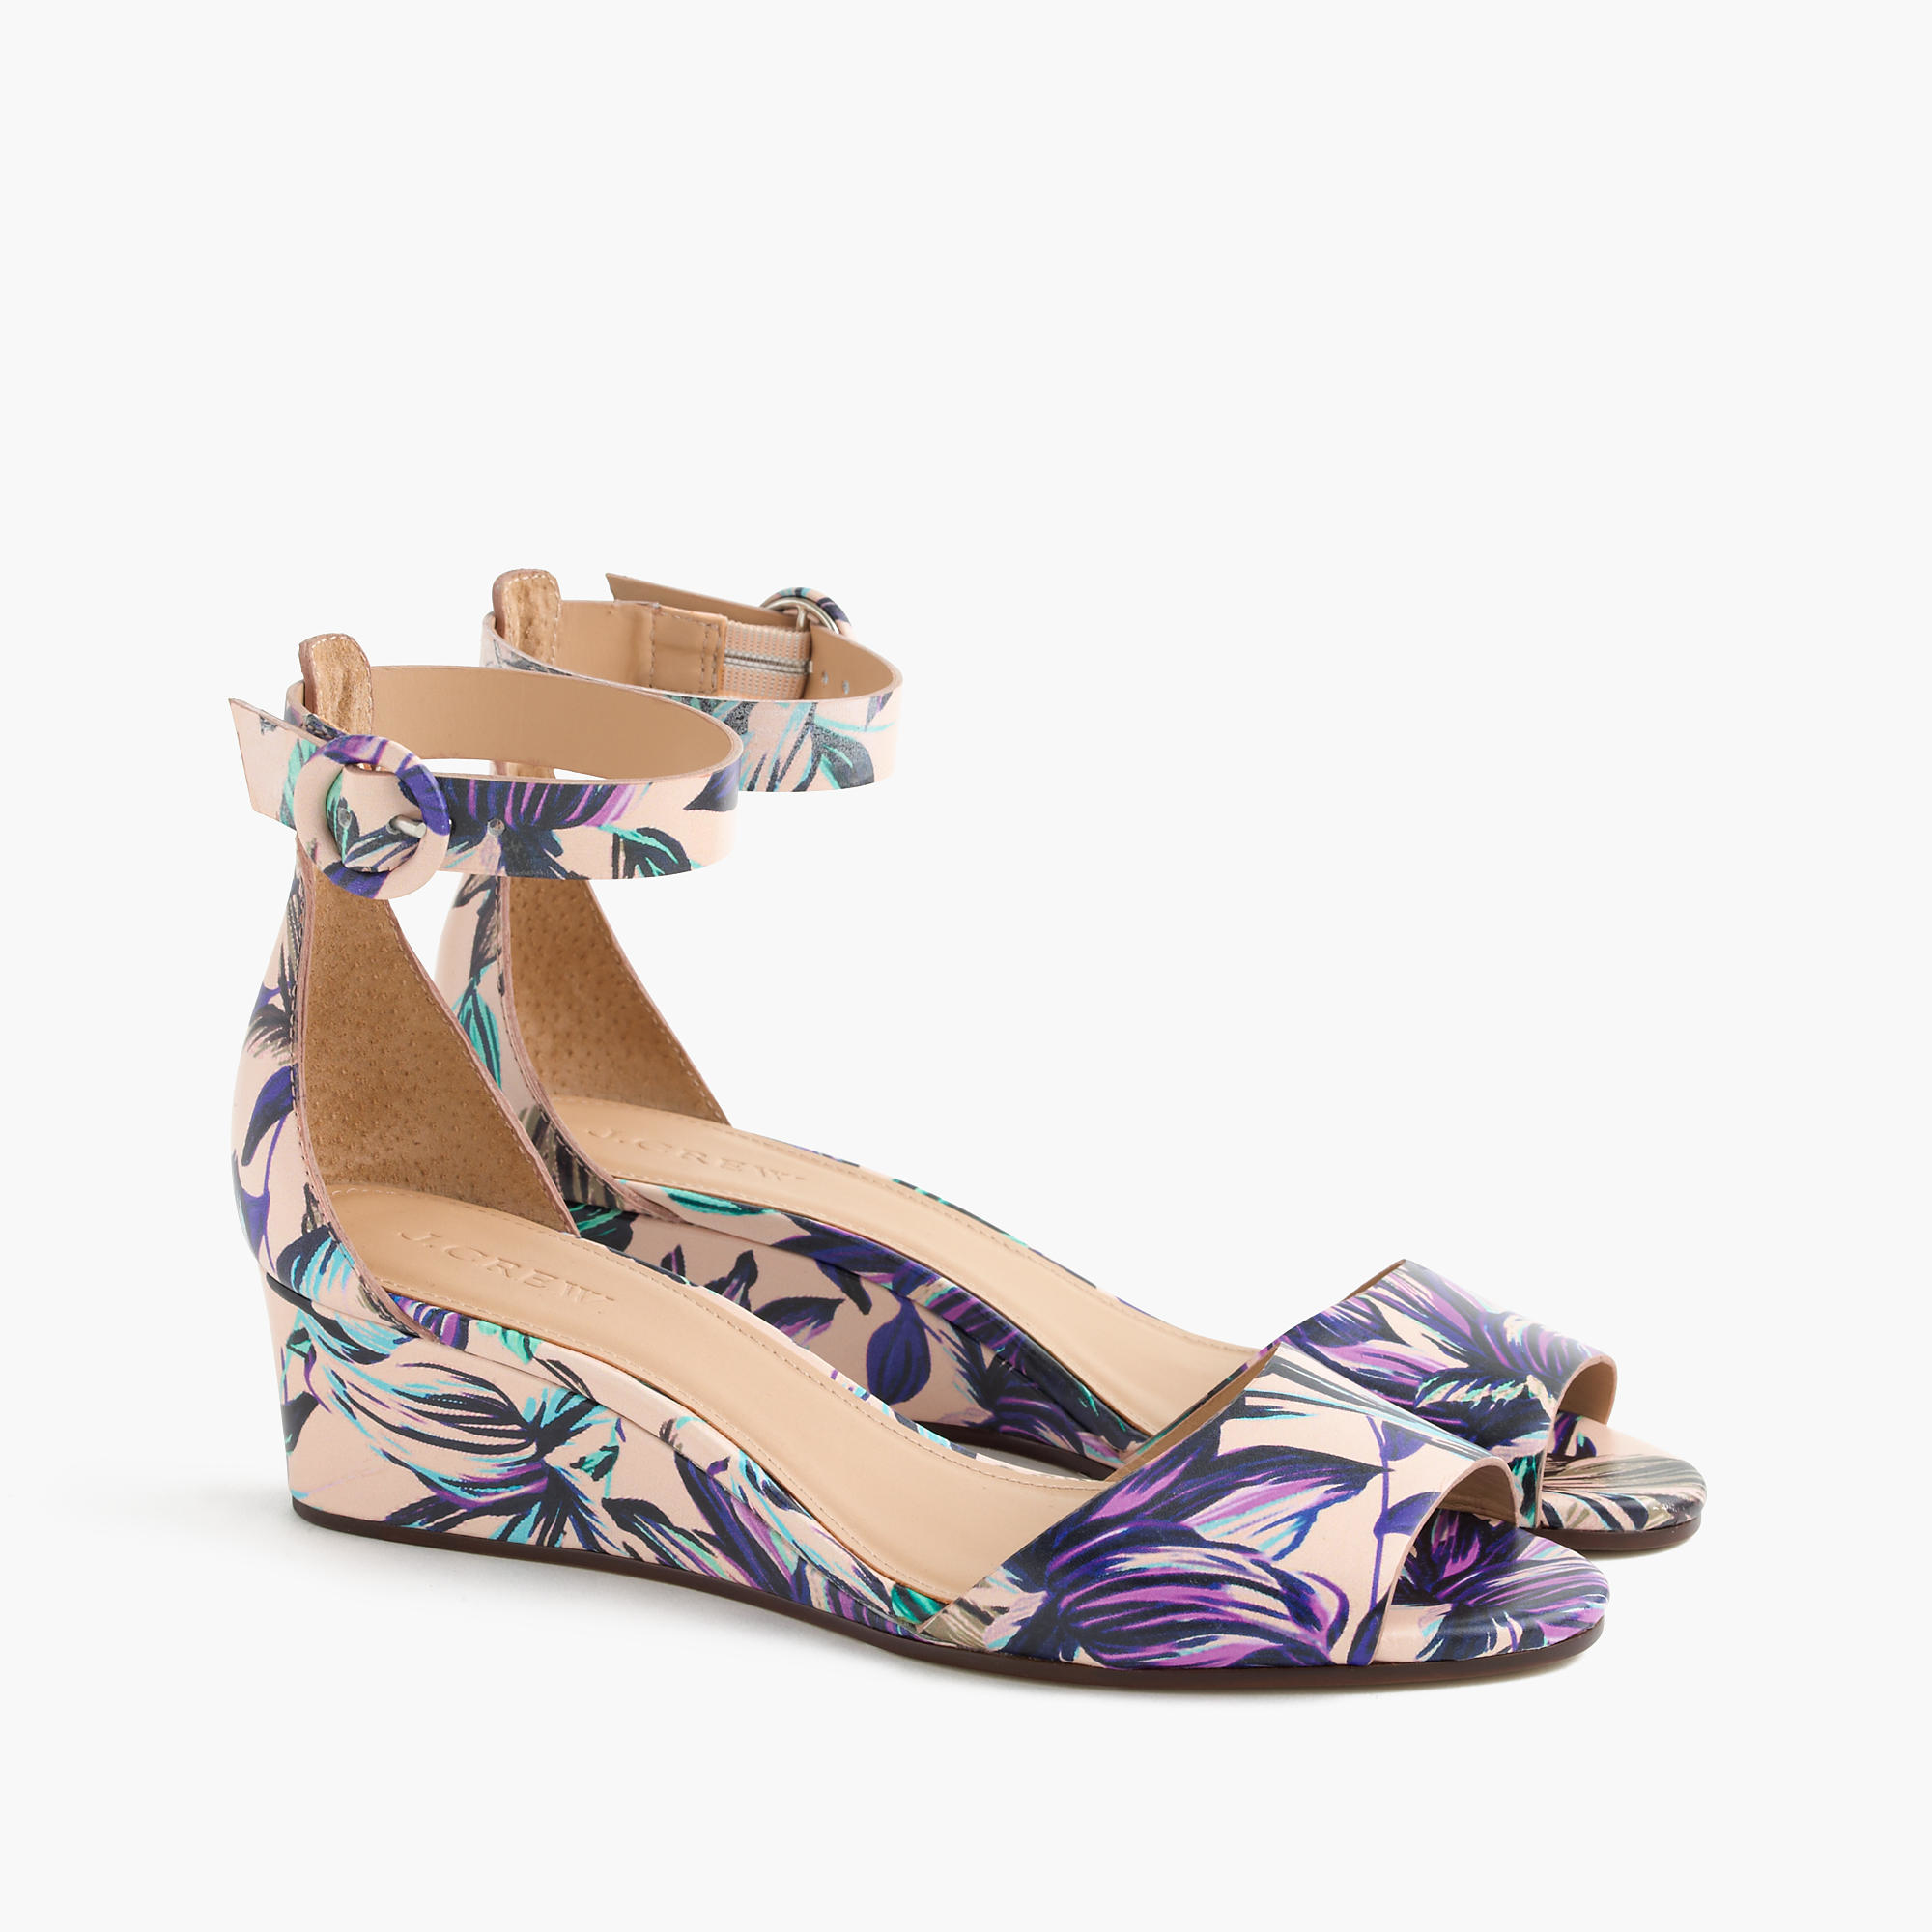 bf0eb3183667 Lyst - J.Crew Laila Leather Wedges In Floral in Purple